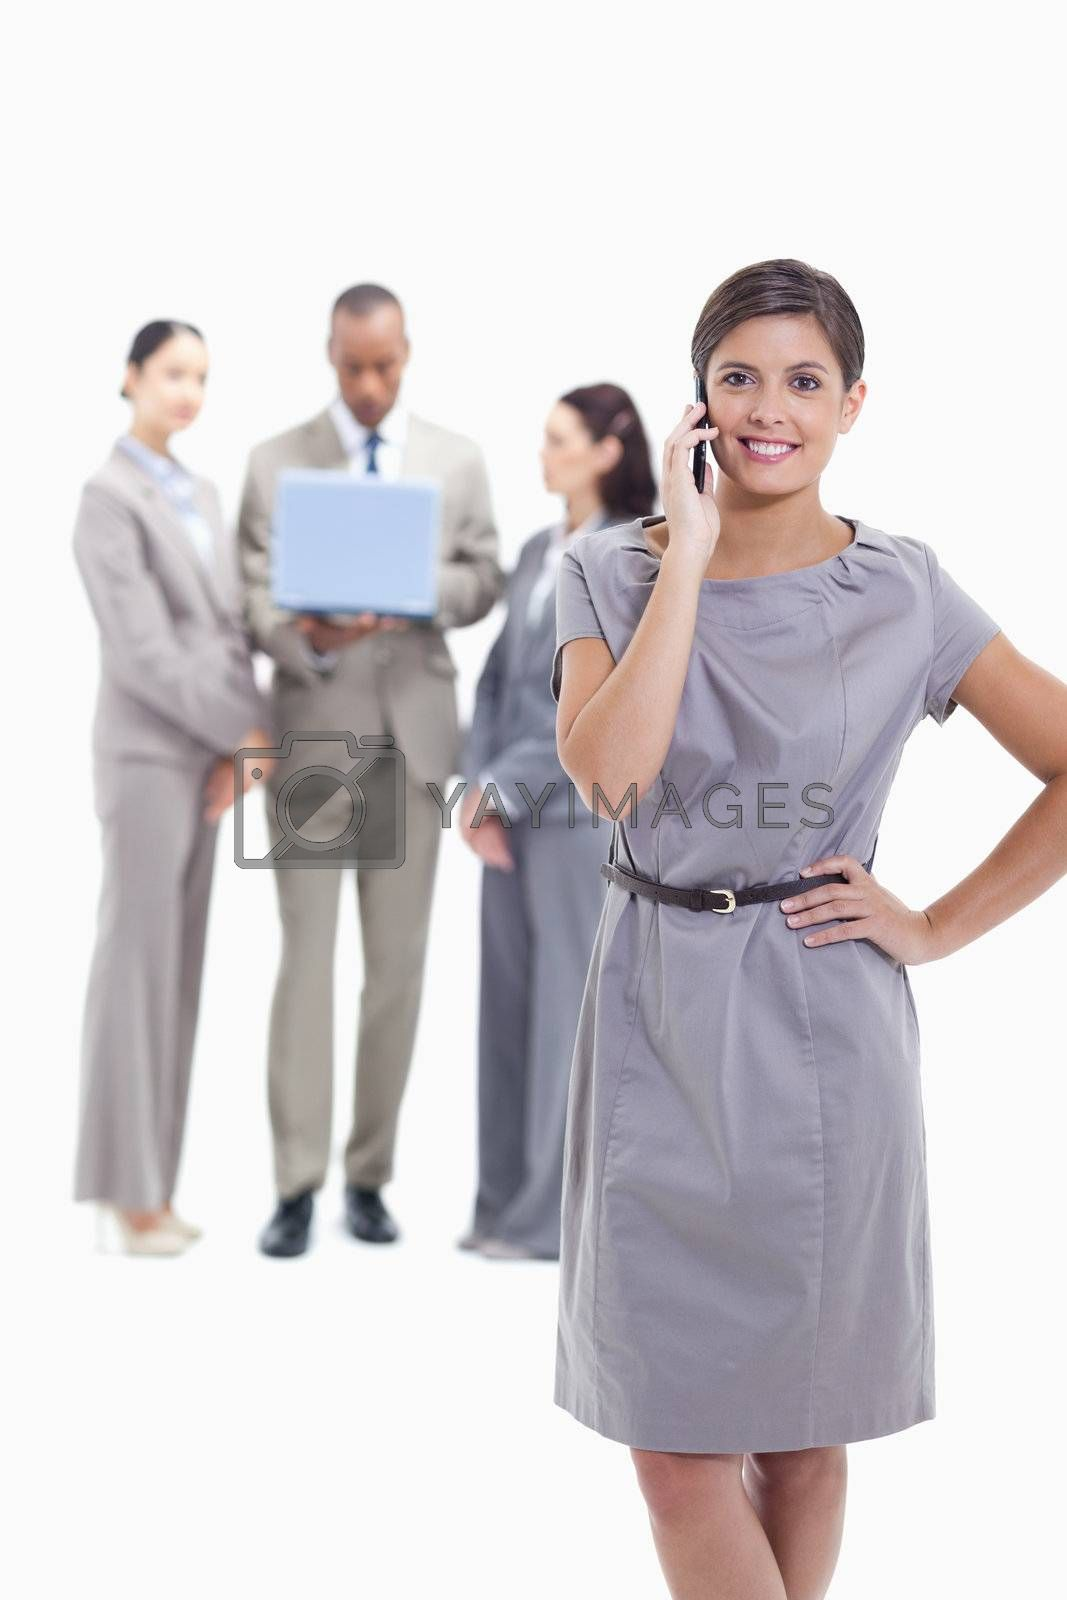 Businesswoman on the phone with a hand on her hip and crossing her legs, with co-workers in the background with a laptop